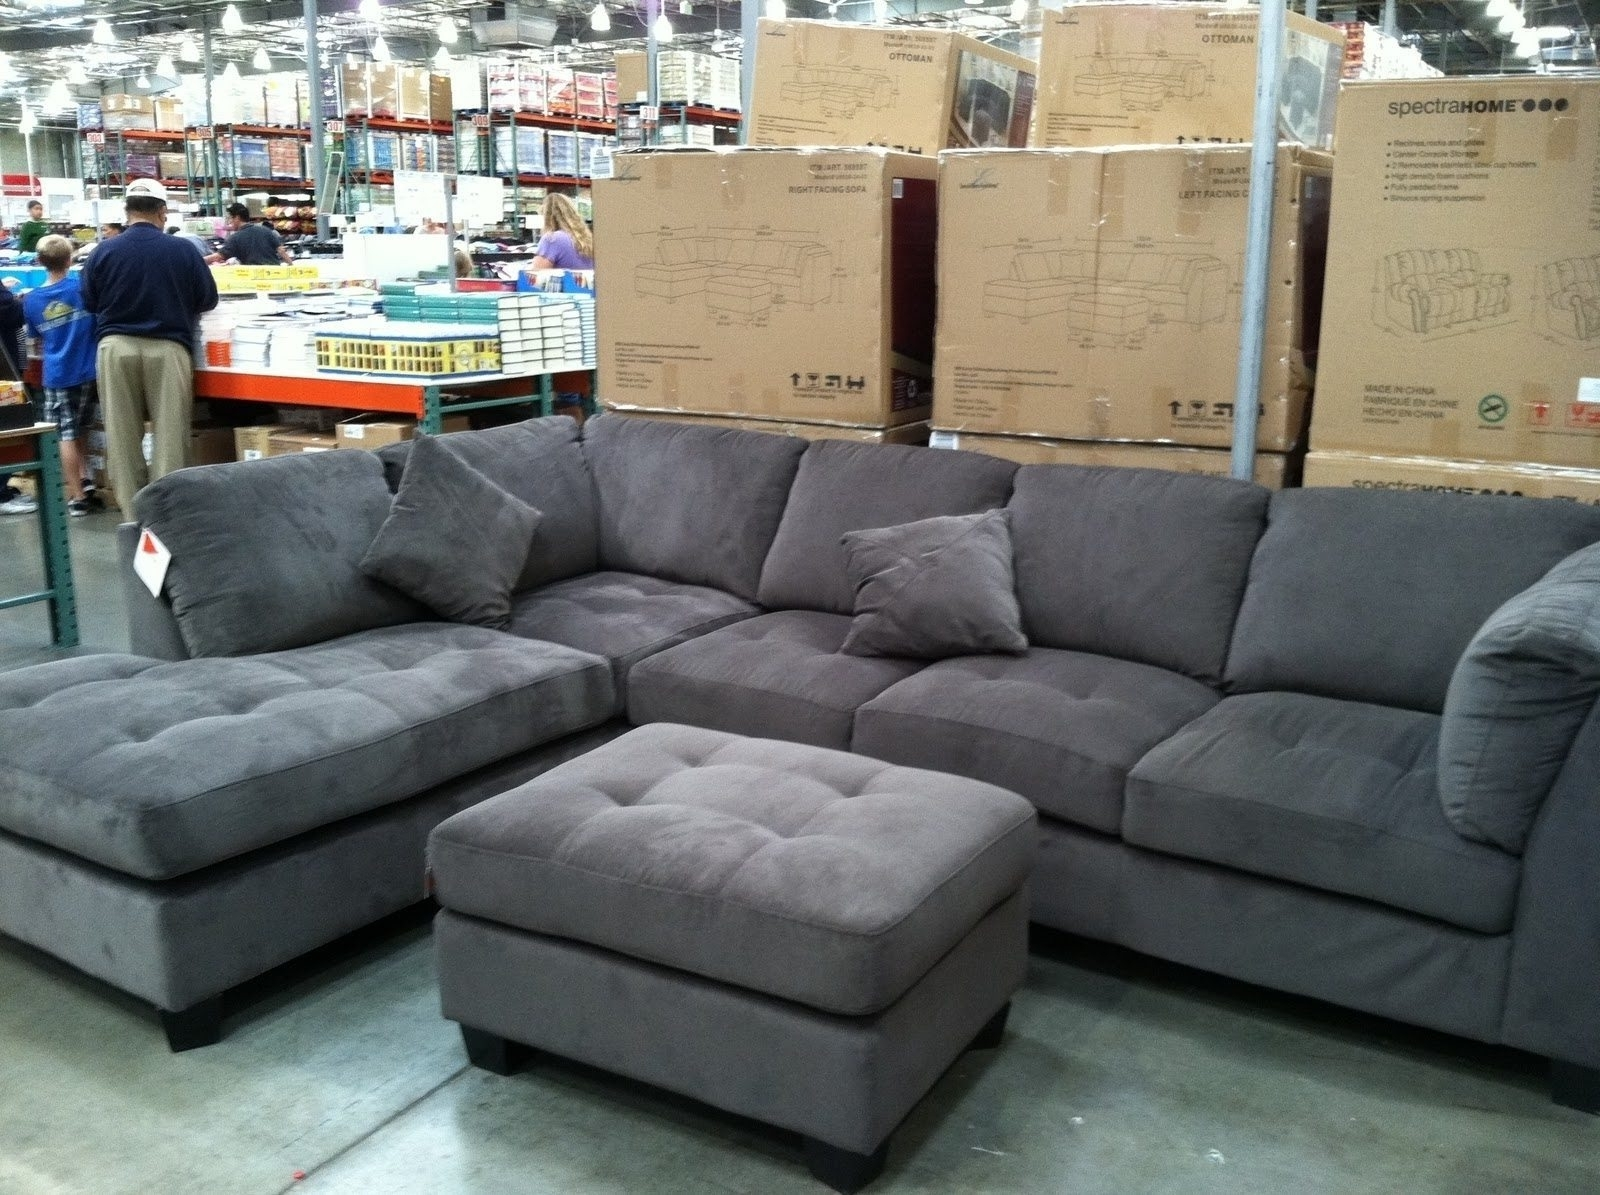 Preferred Sectional Sofas At Costco Intended For Gray Sectional Sofa Costco – Hotelsbacau (View 9 of 15)